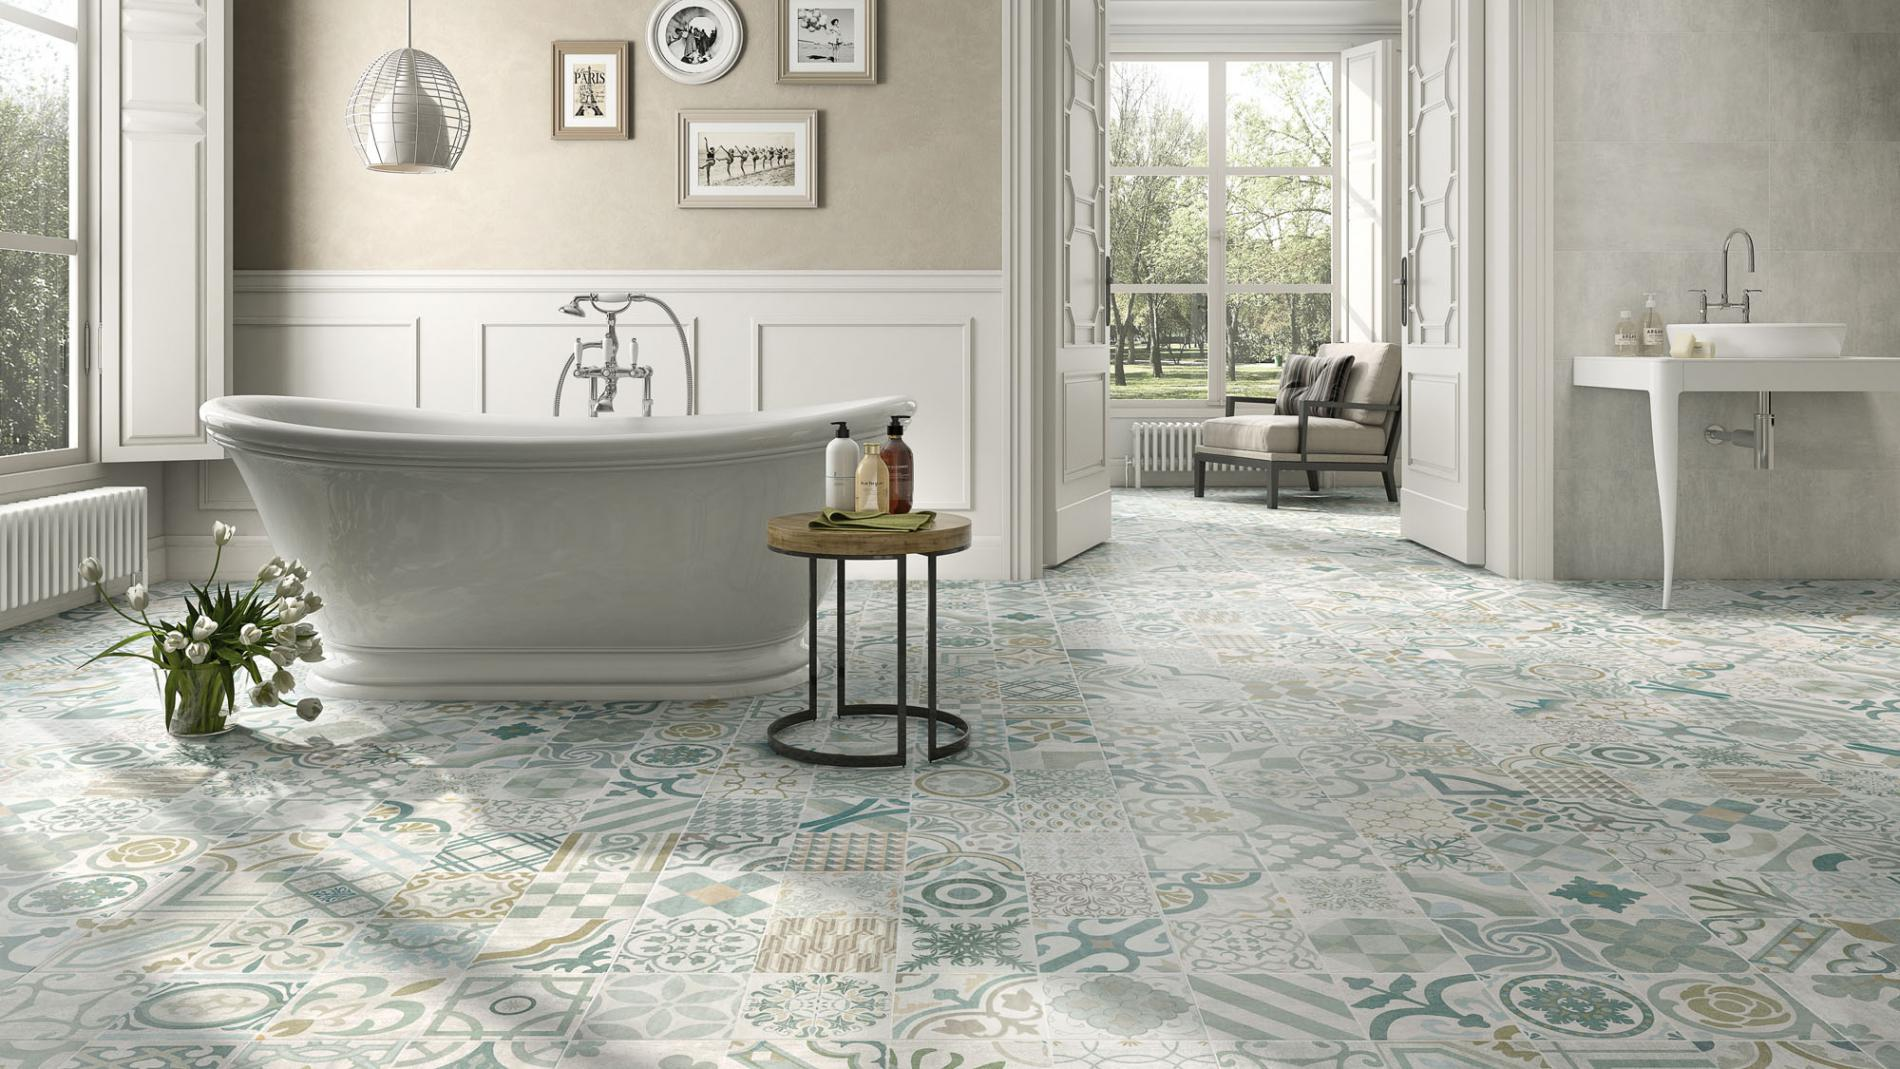 pam1900x391 Tiles dublin waterloo bathrooms commercial contracts ireland supply and fit luxury.jpg